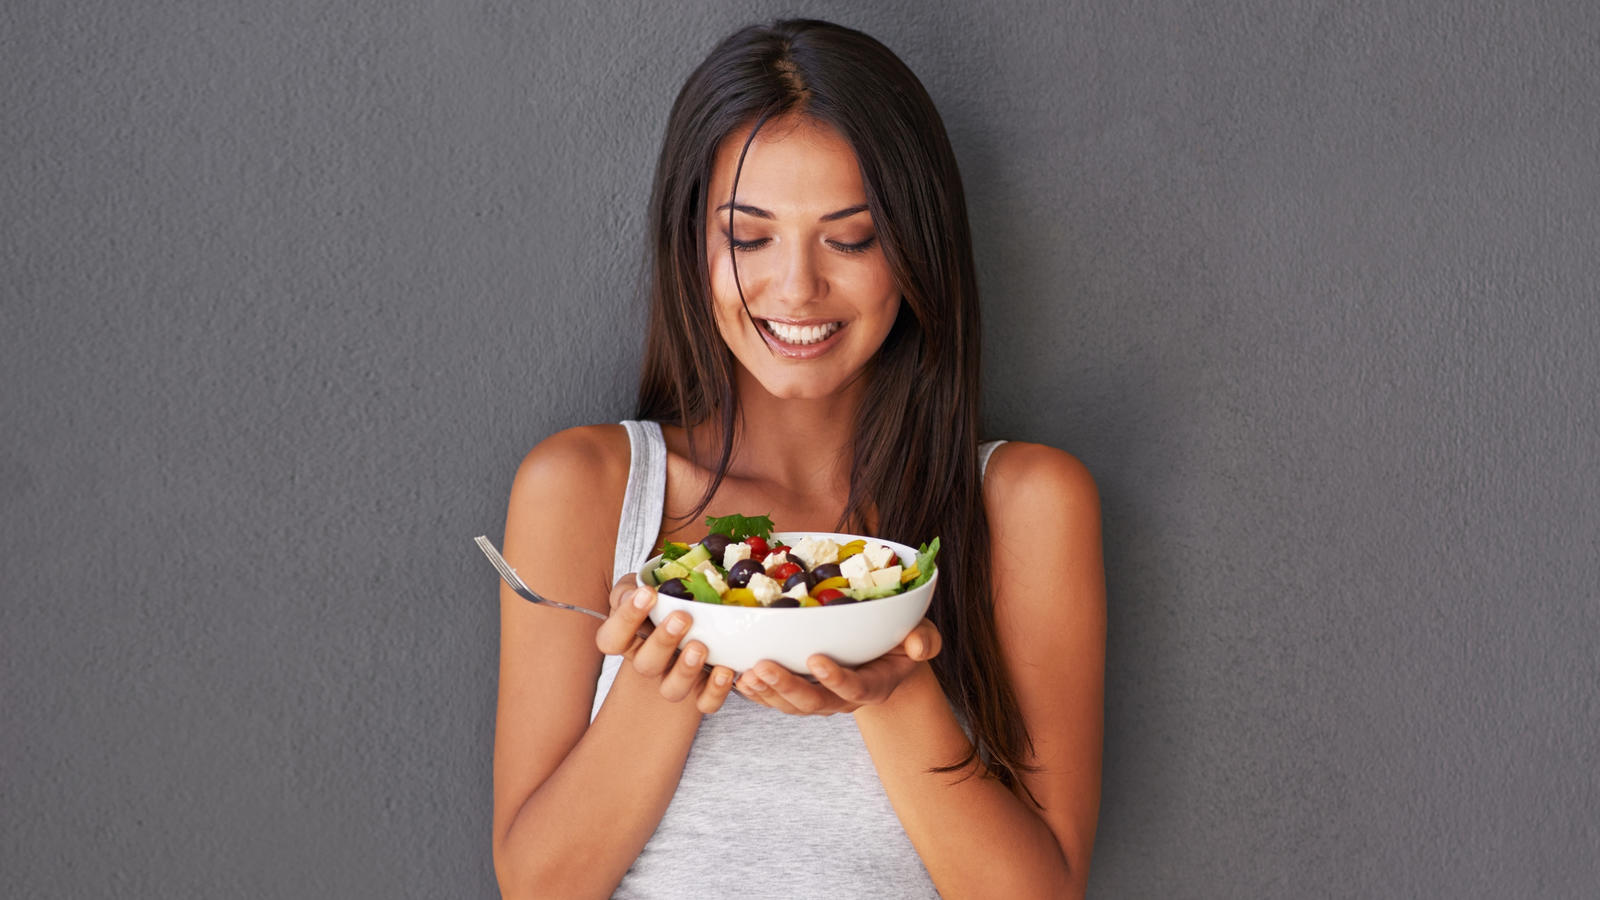 Shot of an attractive young woman looking happy while holding a salad bowlhttp://195.154.178.81/DATA/i_collage/pi/shoots/783751.jpg